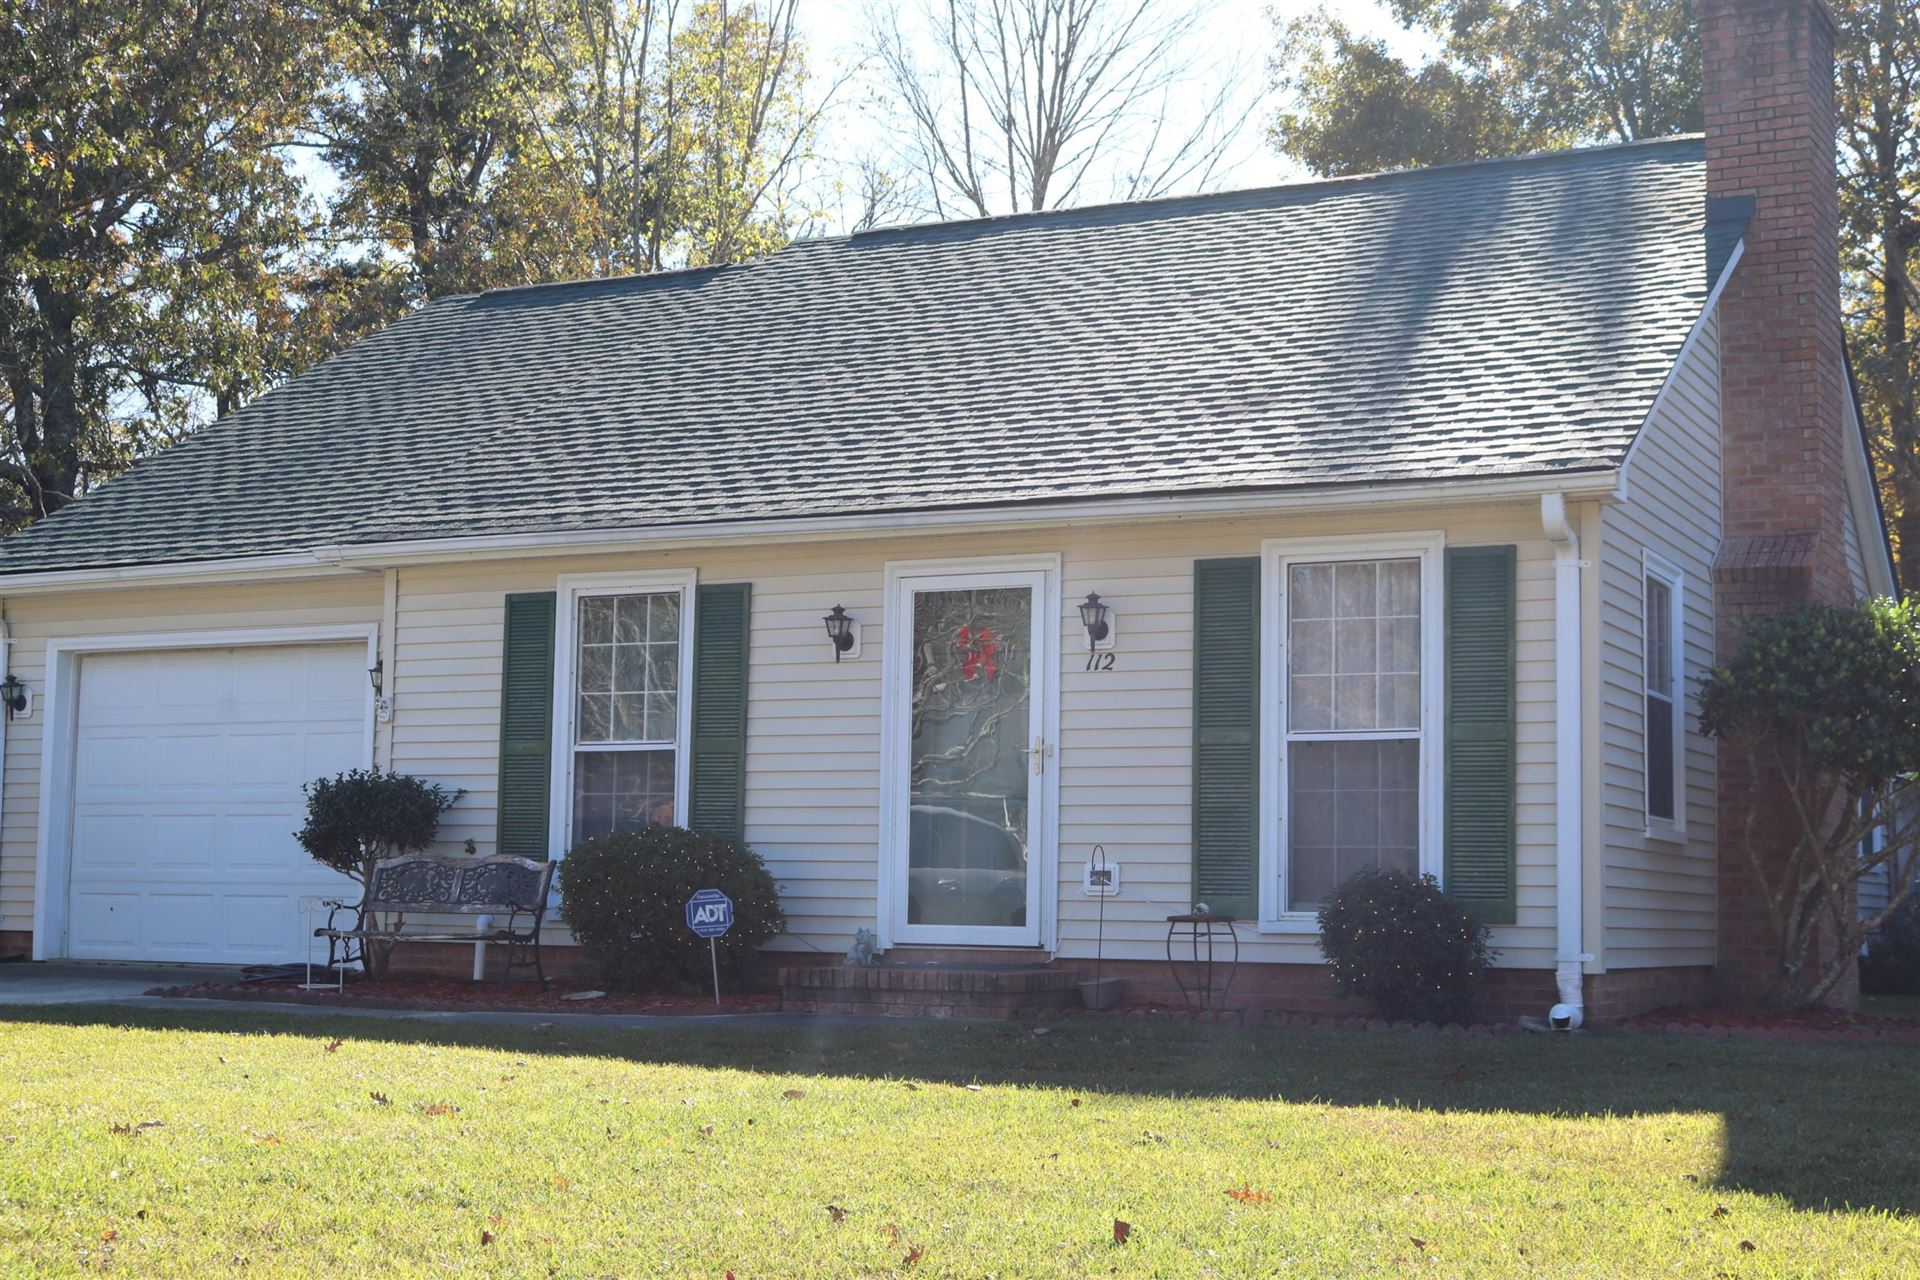 Photo of 112 Hamlet Road, Summerville, SC 29483 (MLS # 20032185)